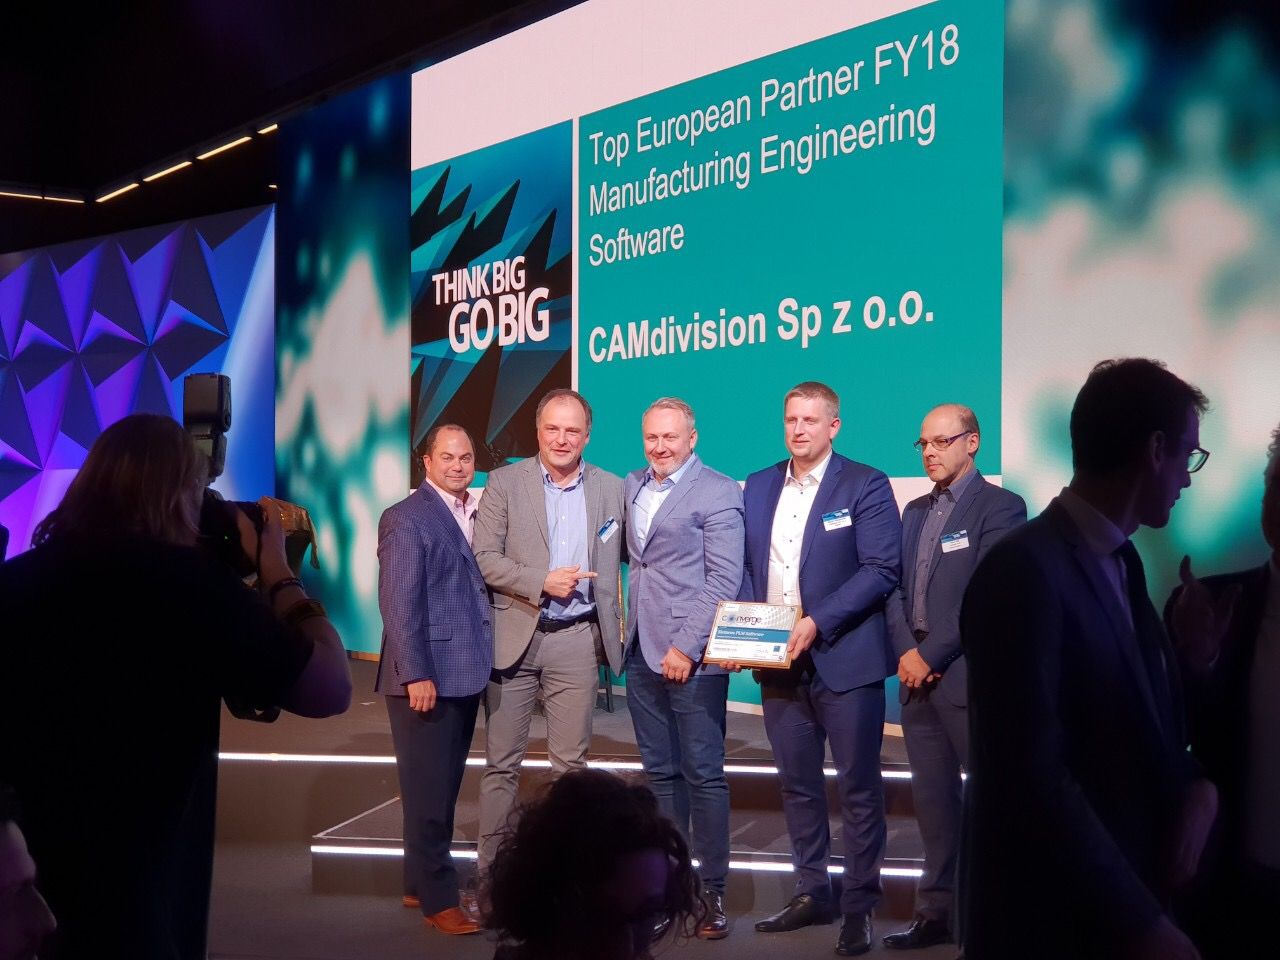 """Top European Partner for Manufacturing Engineering Software FY18"""